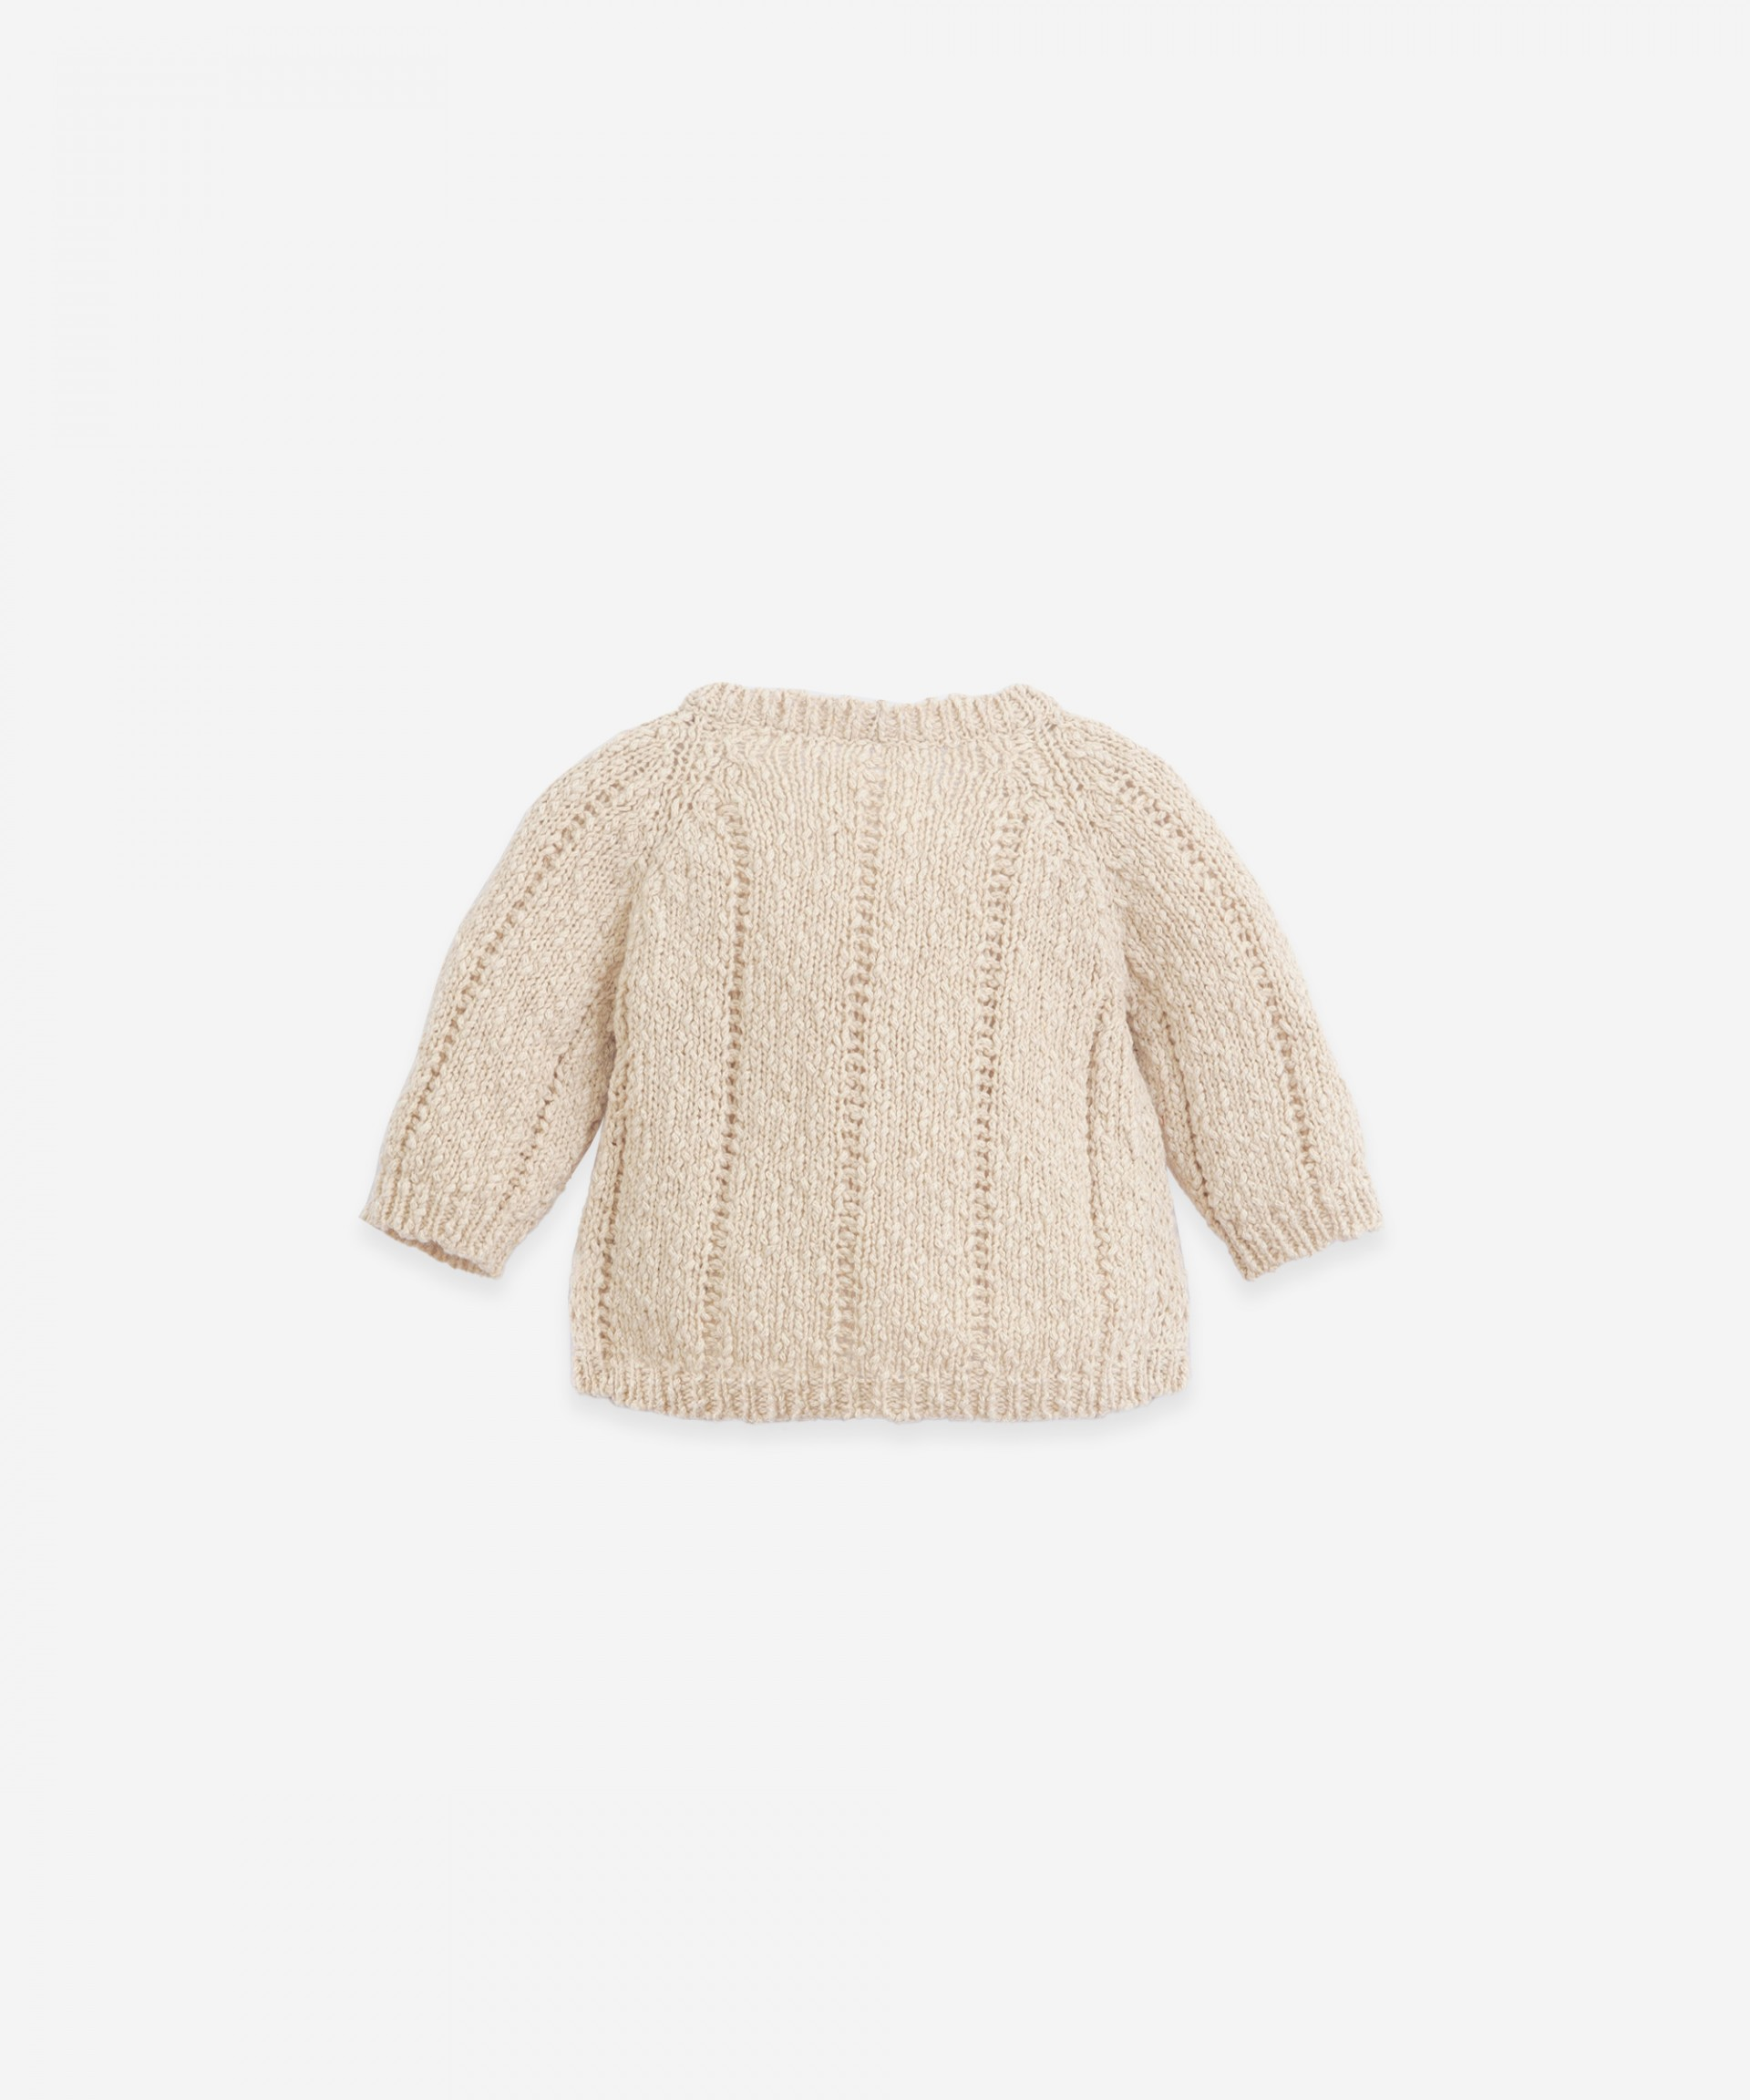 Knitted cardigan of cotton and linen | Botany